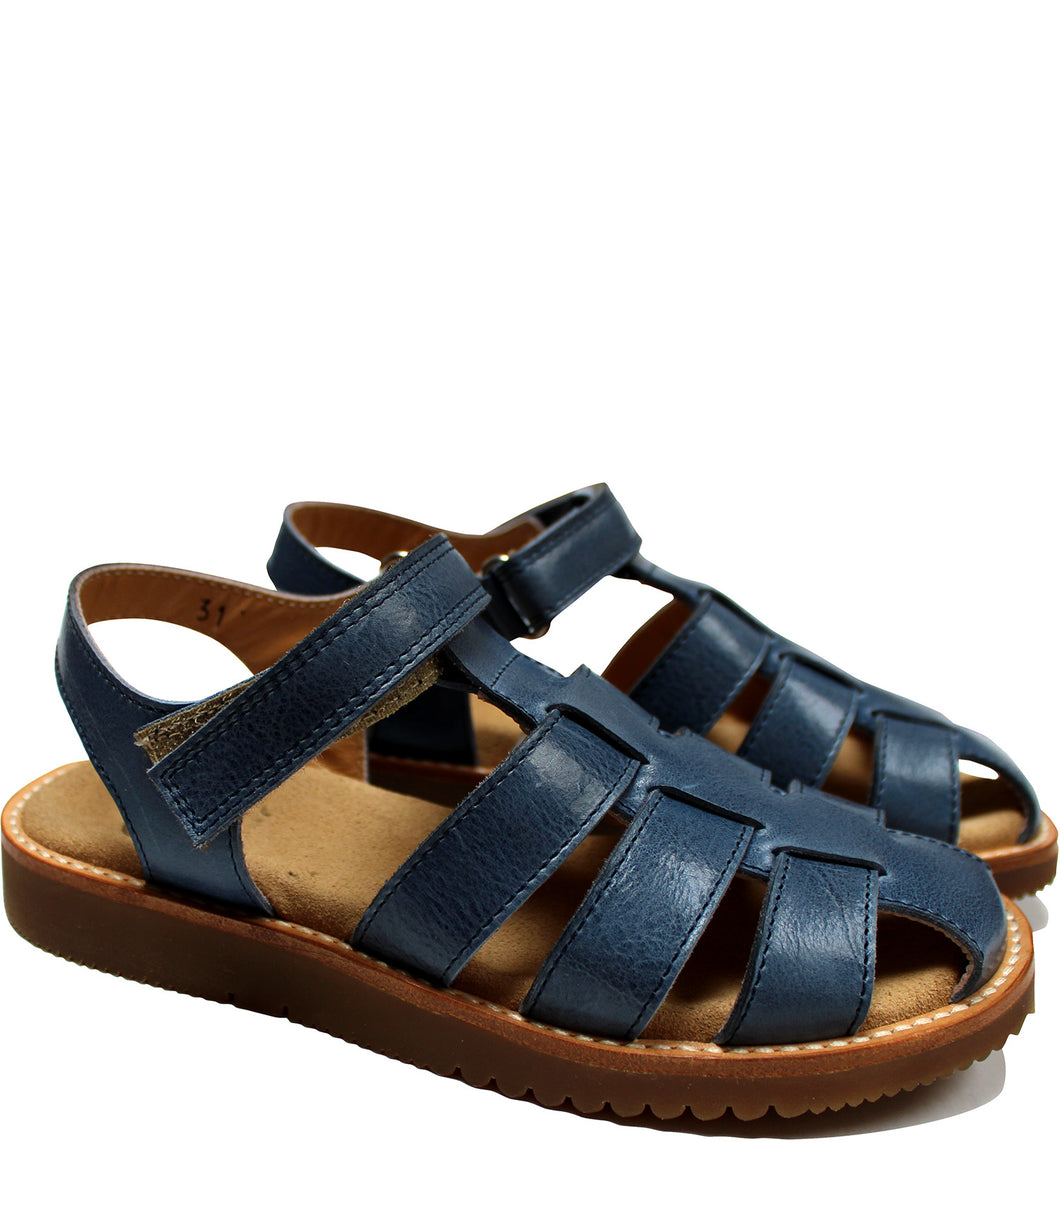 Indaco leather sandals